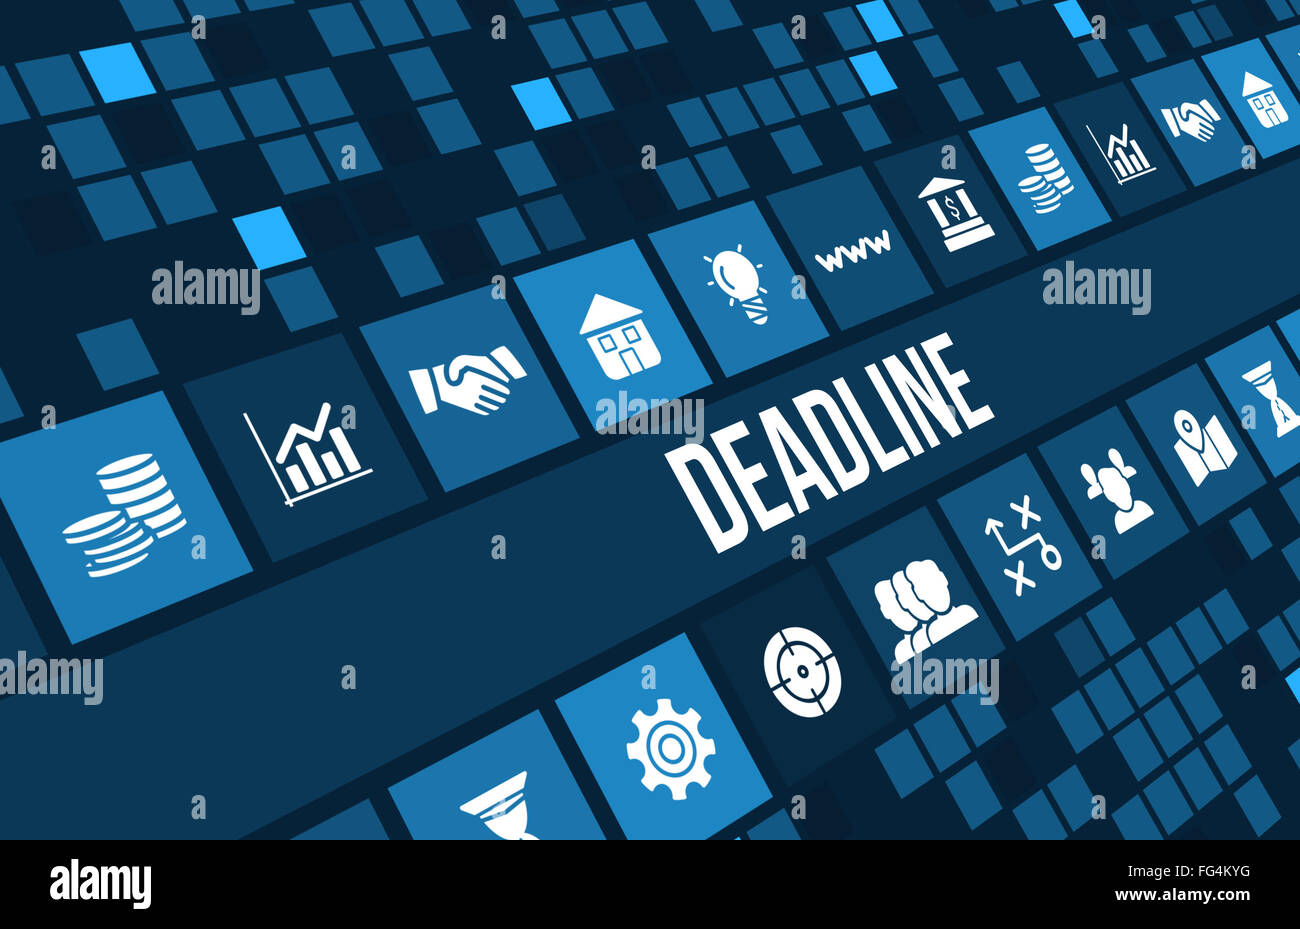 Dead line concept image with business icons and copyspace. - Stock Image